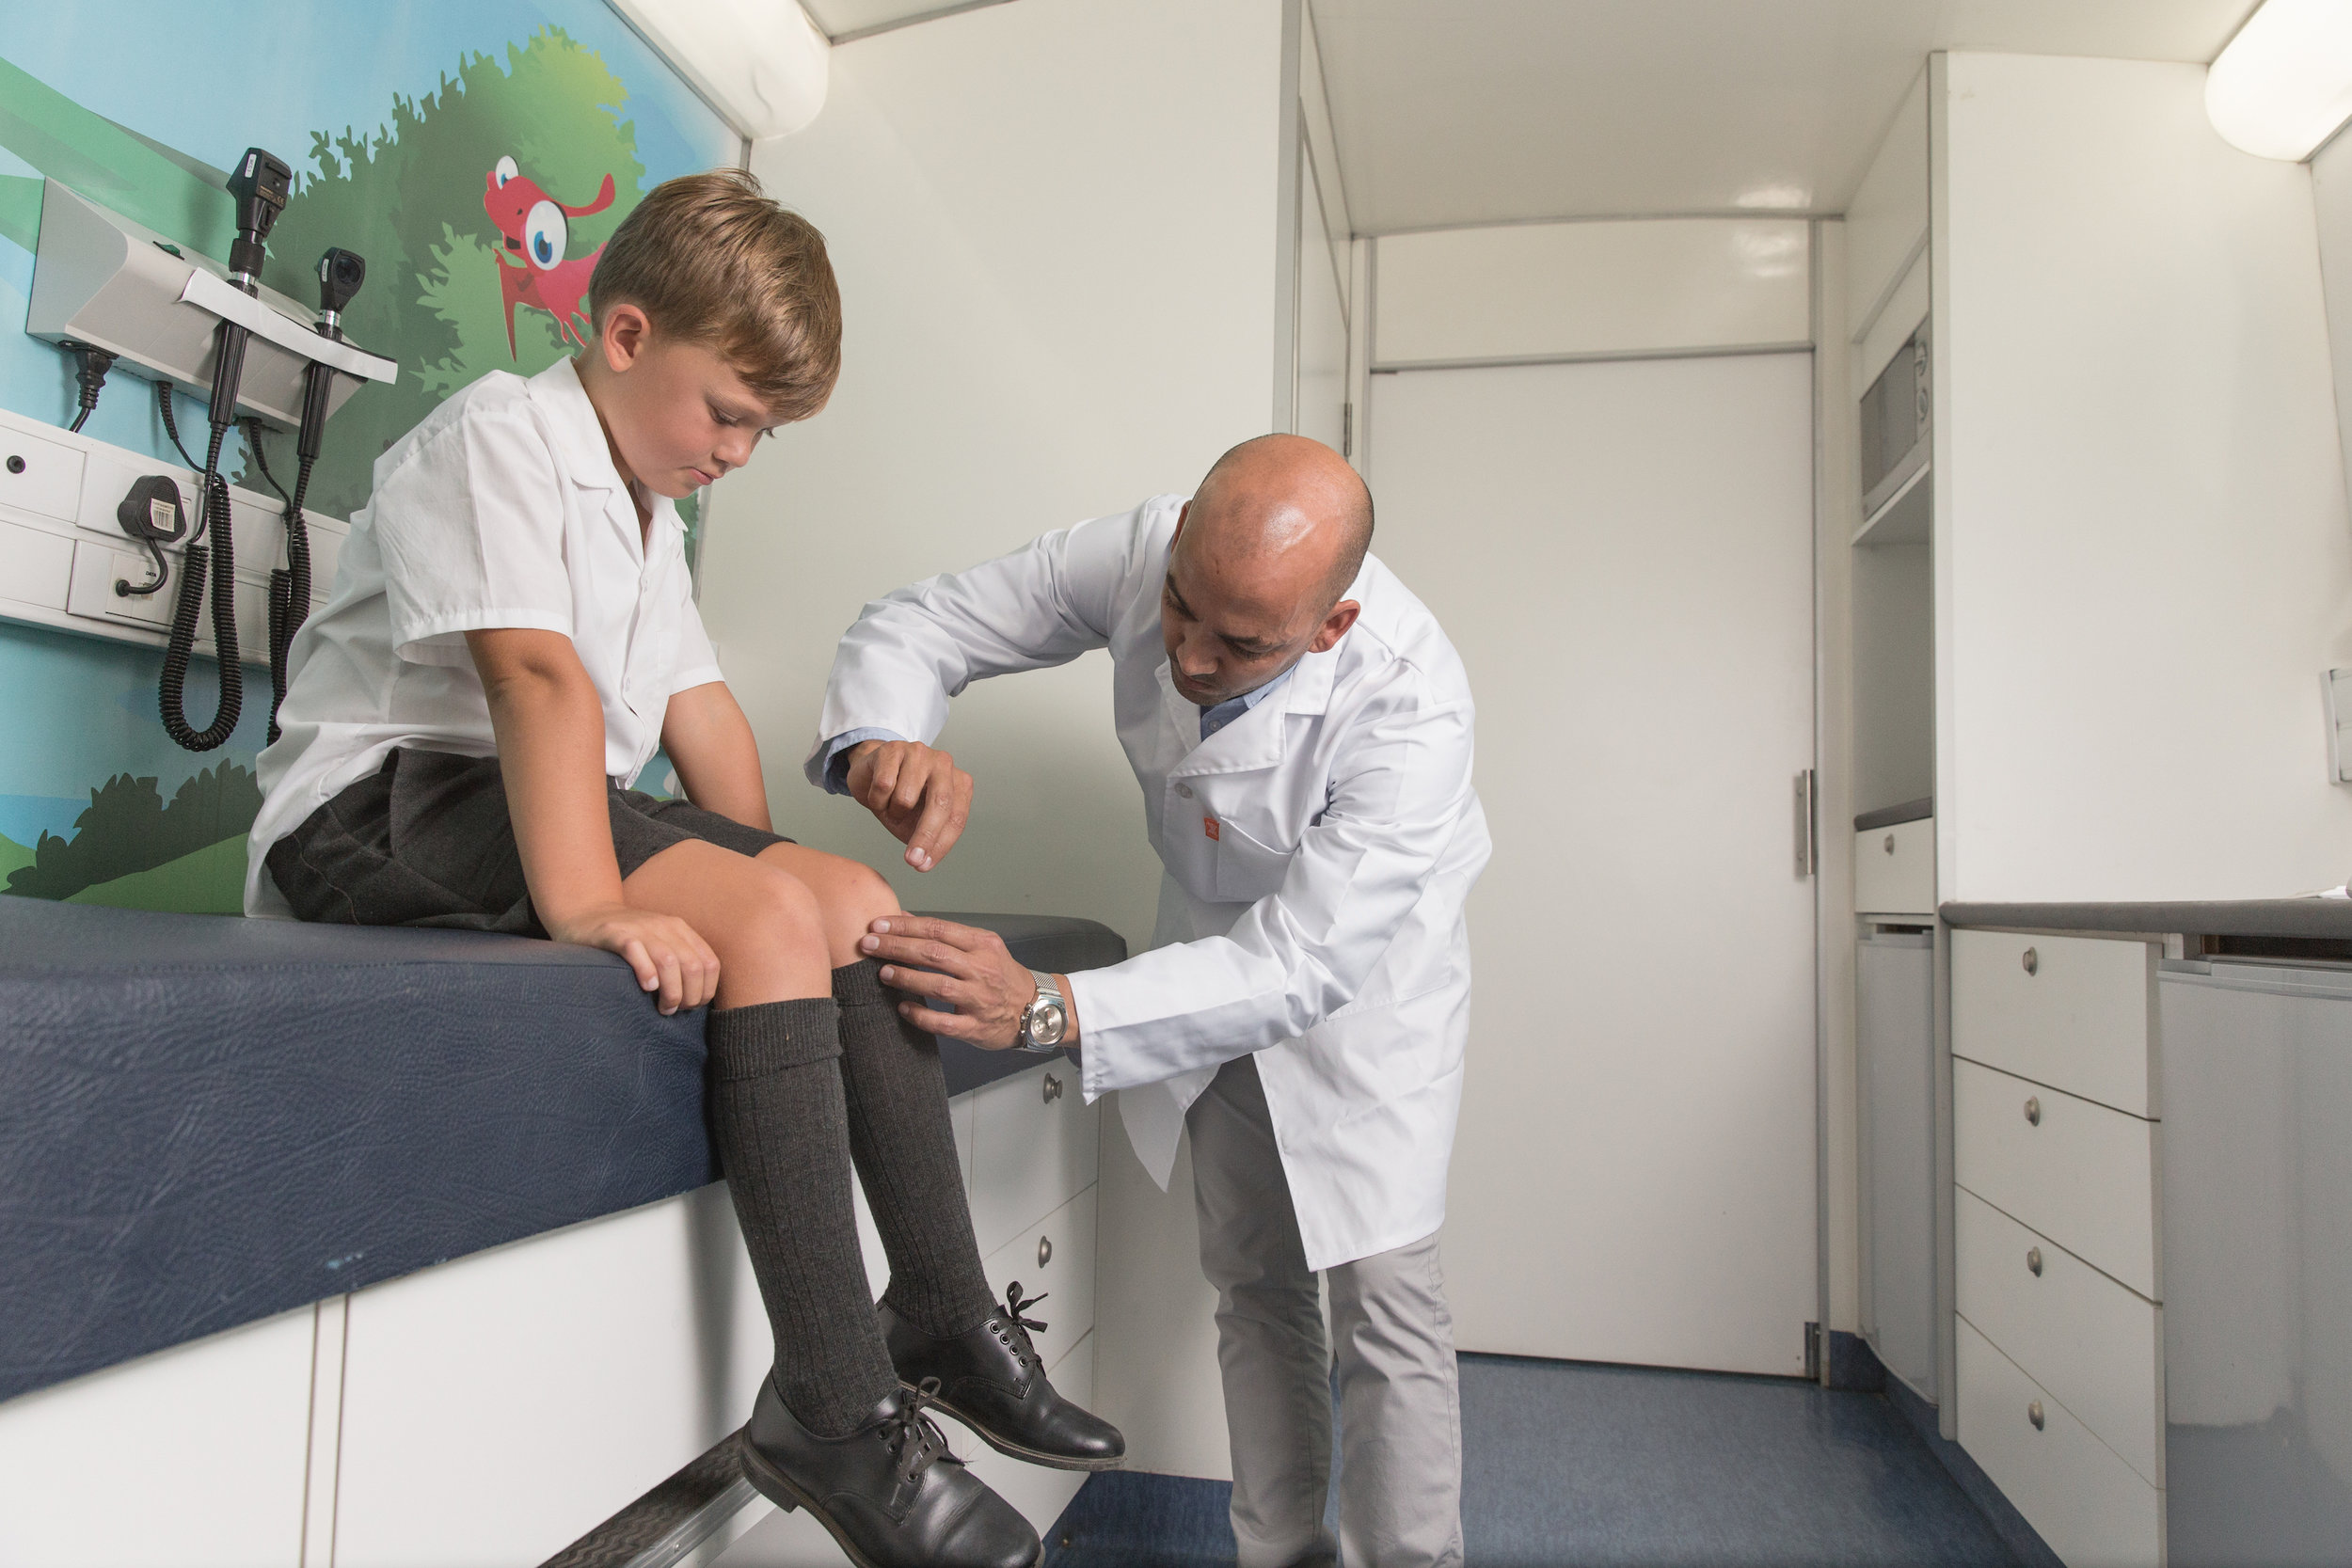 Primary Health Care section - Qualified nurse conducts a thorough examination and administers basic treatments.